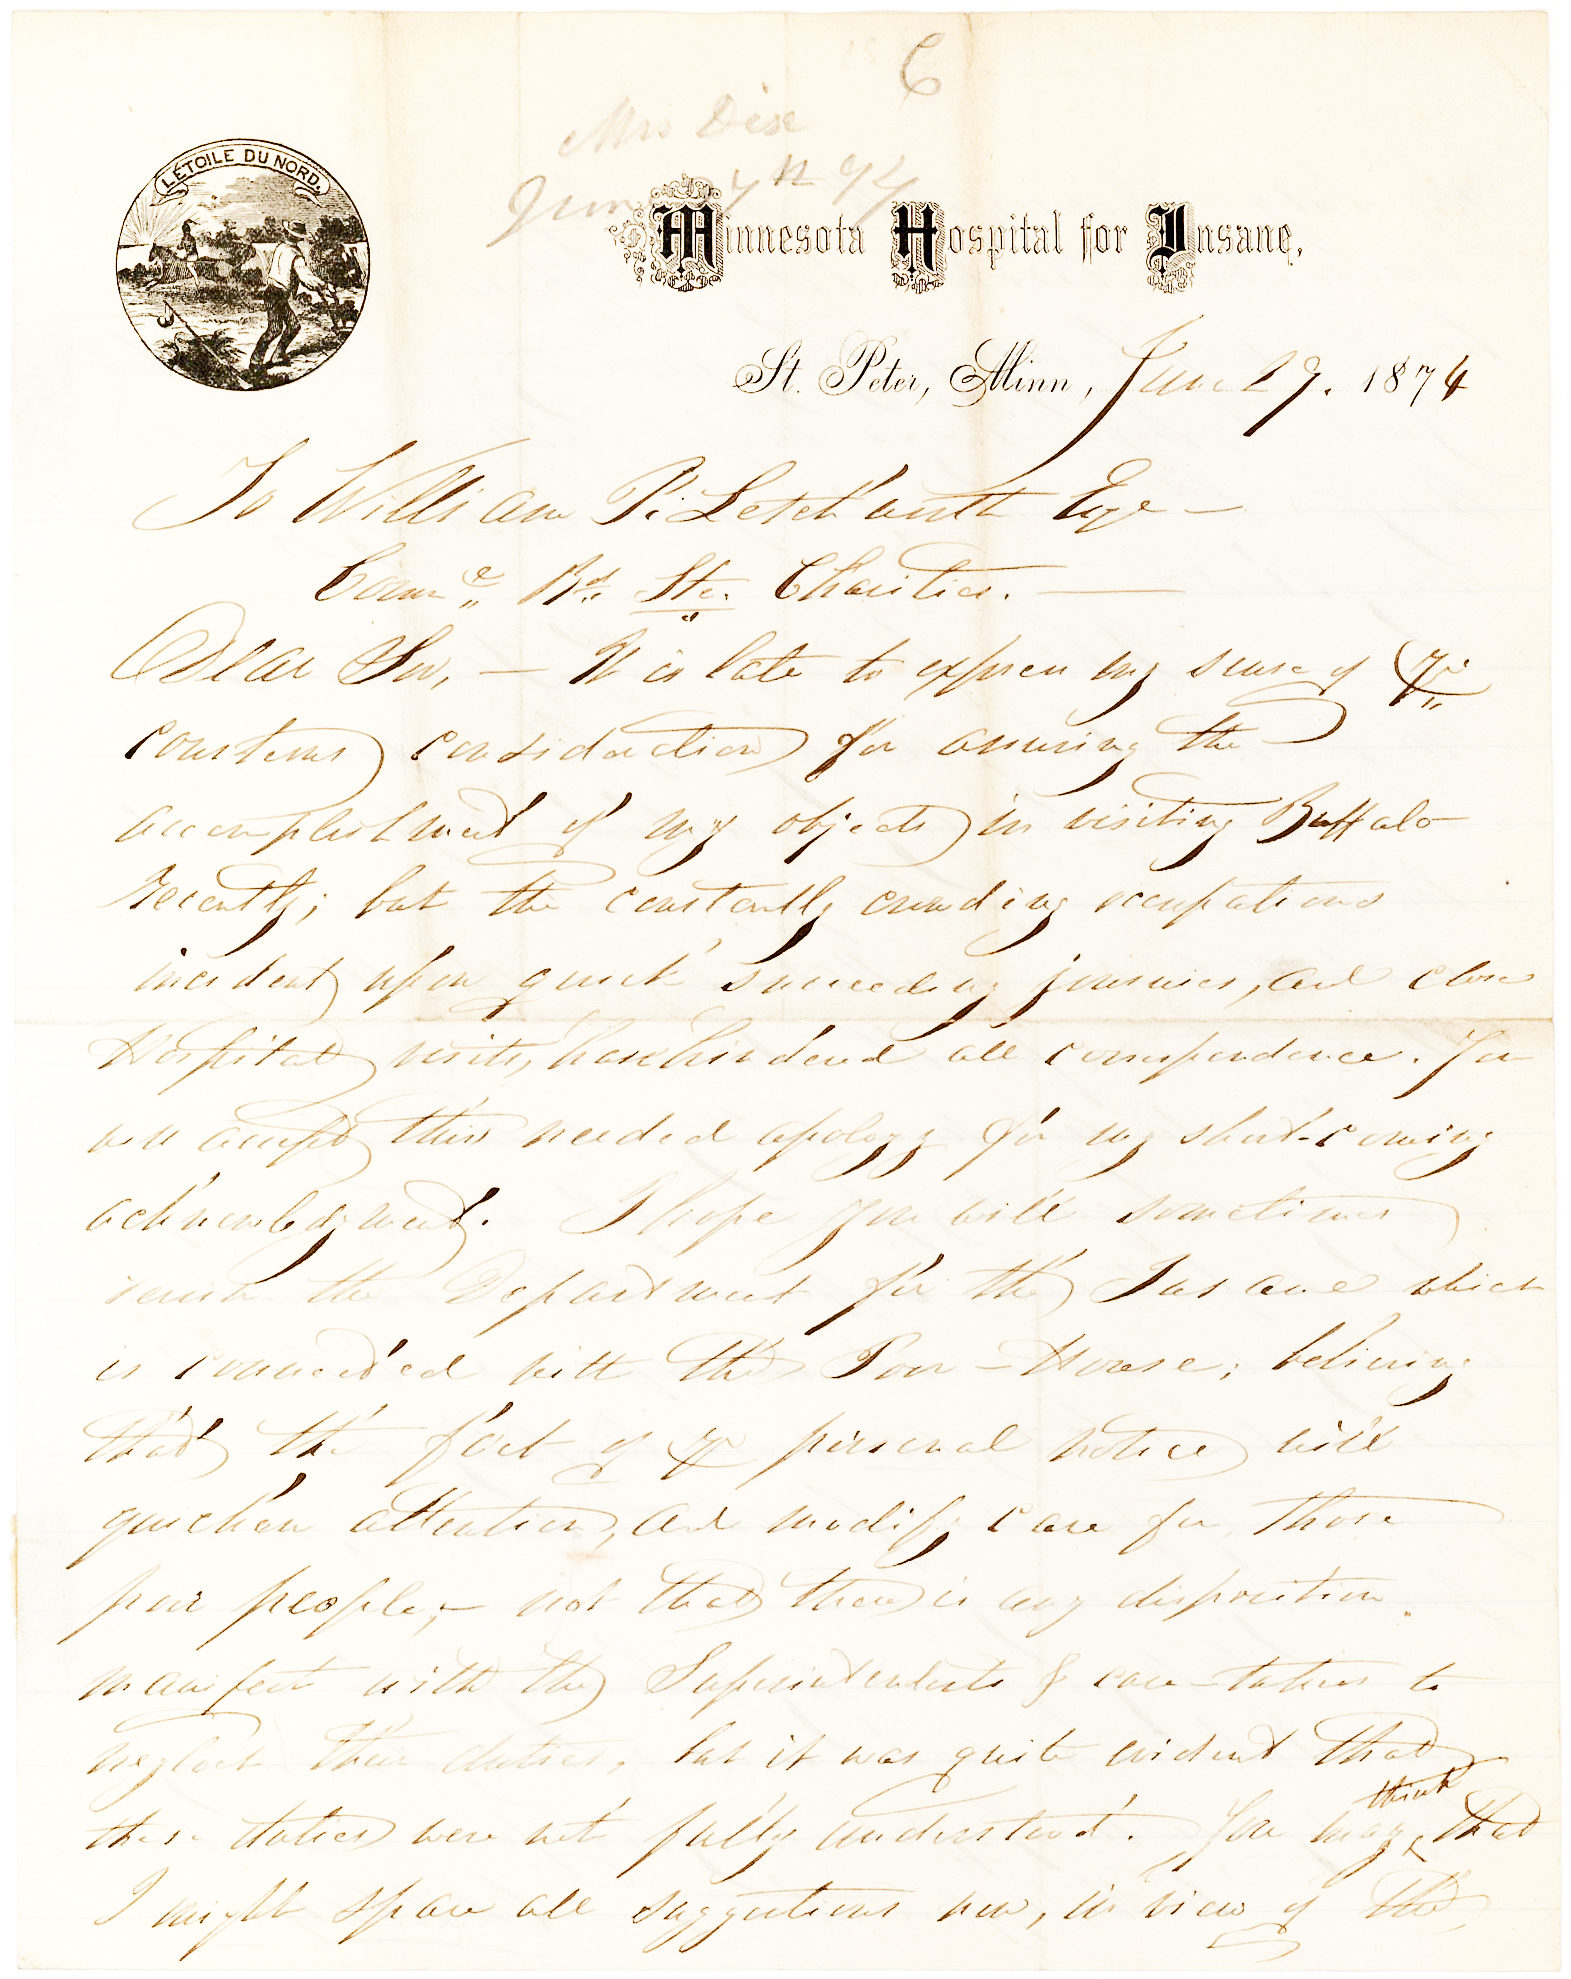 """Autograph Letter on """"Minnesota Hospital for Insane"""" Letterhead, from the American Reformer who Helped Established the First American Asylums for the Mentally Ill"""